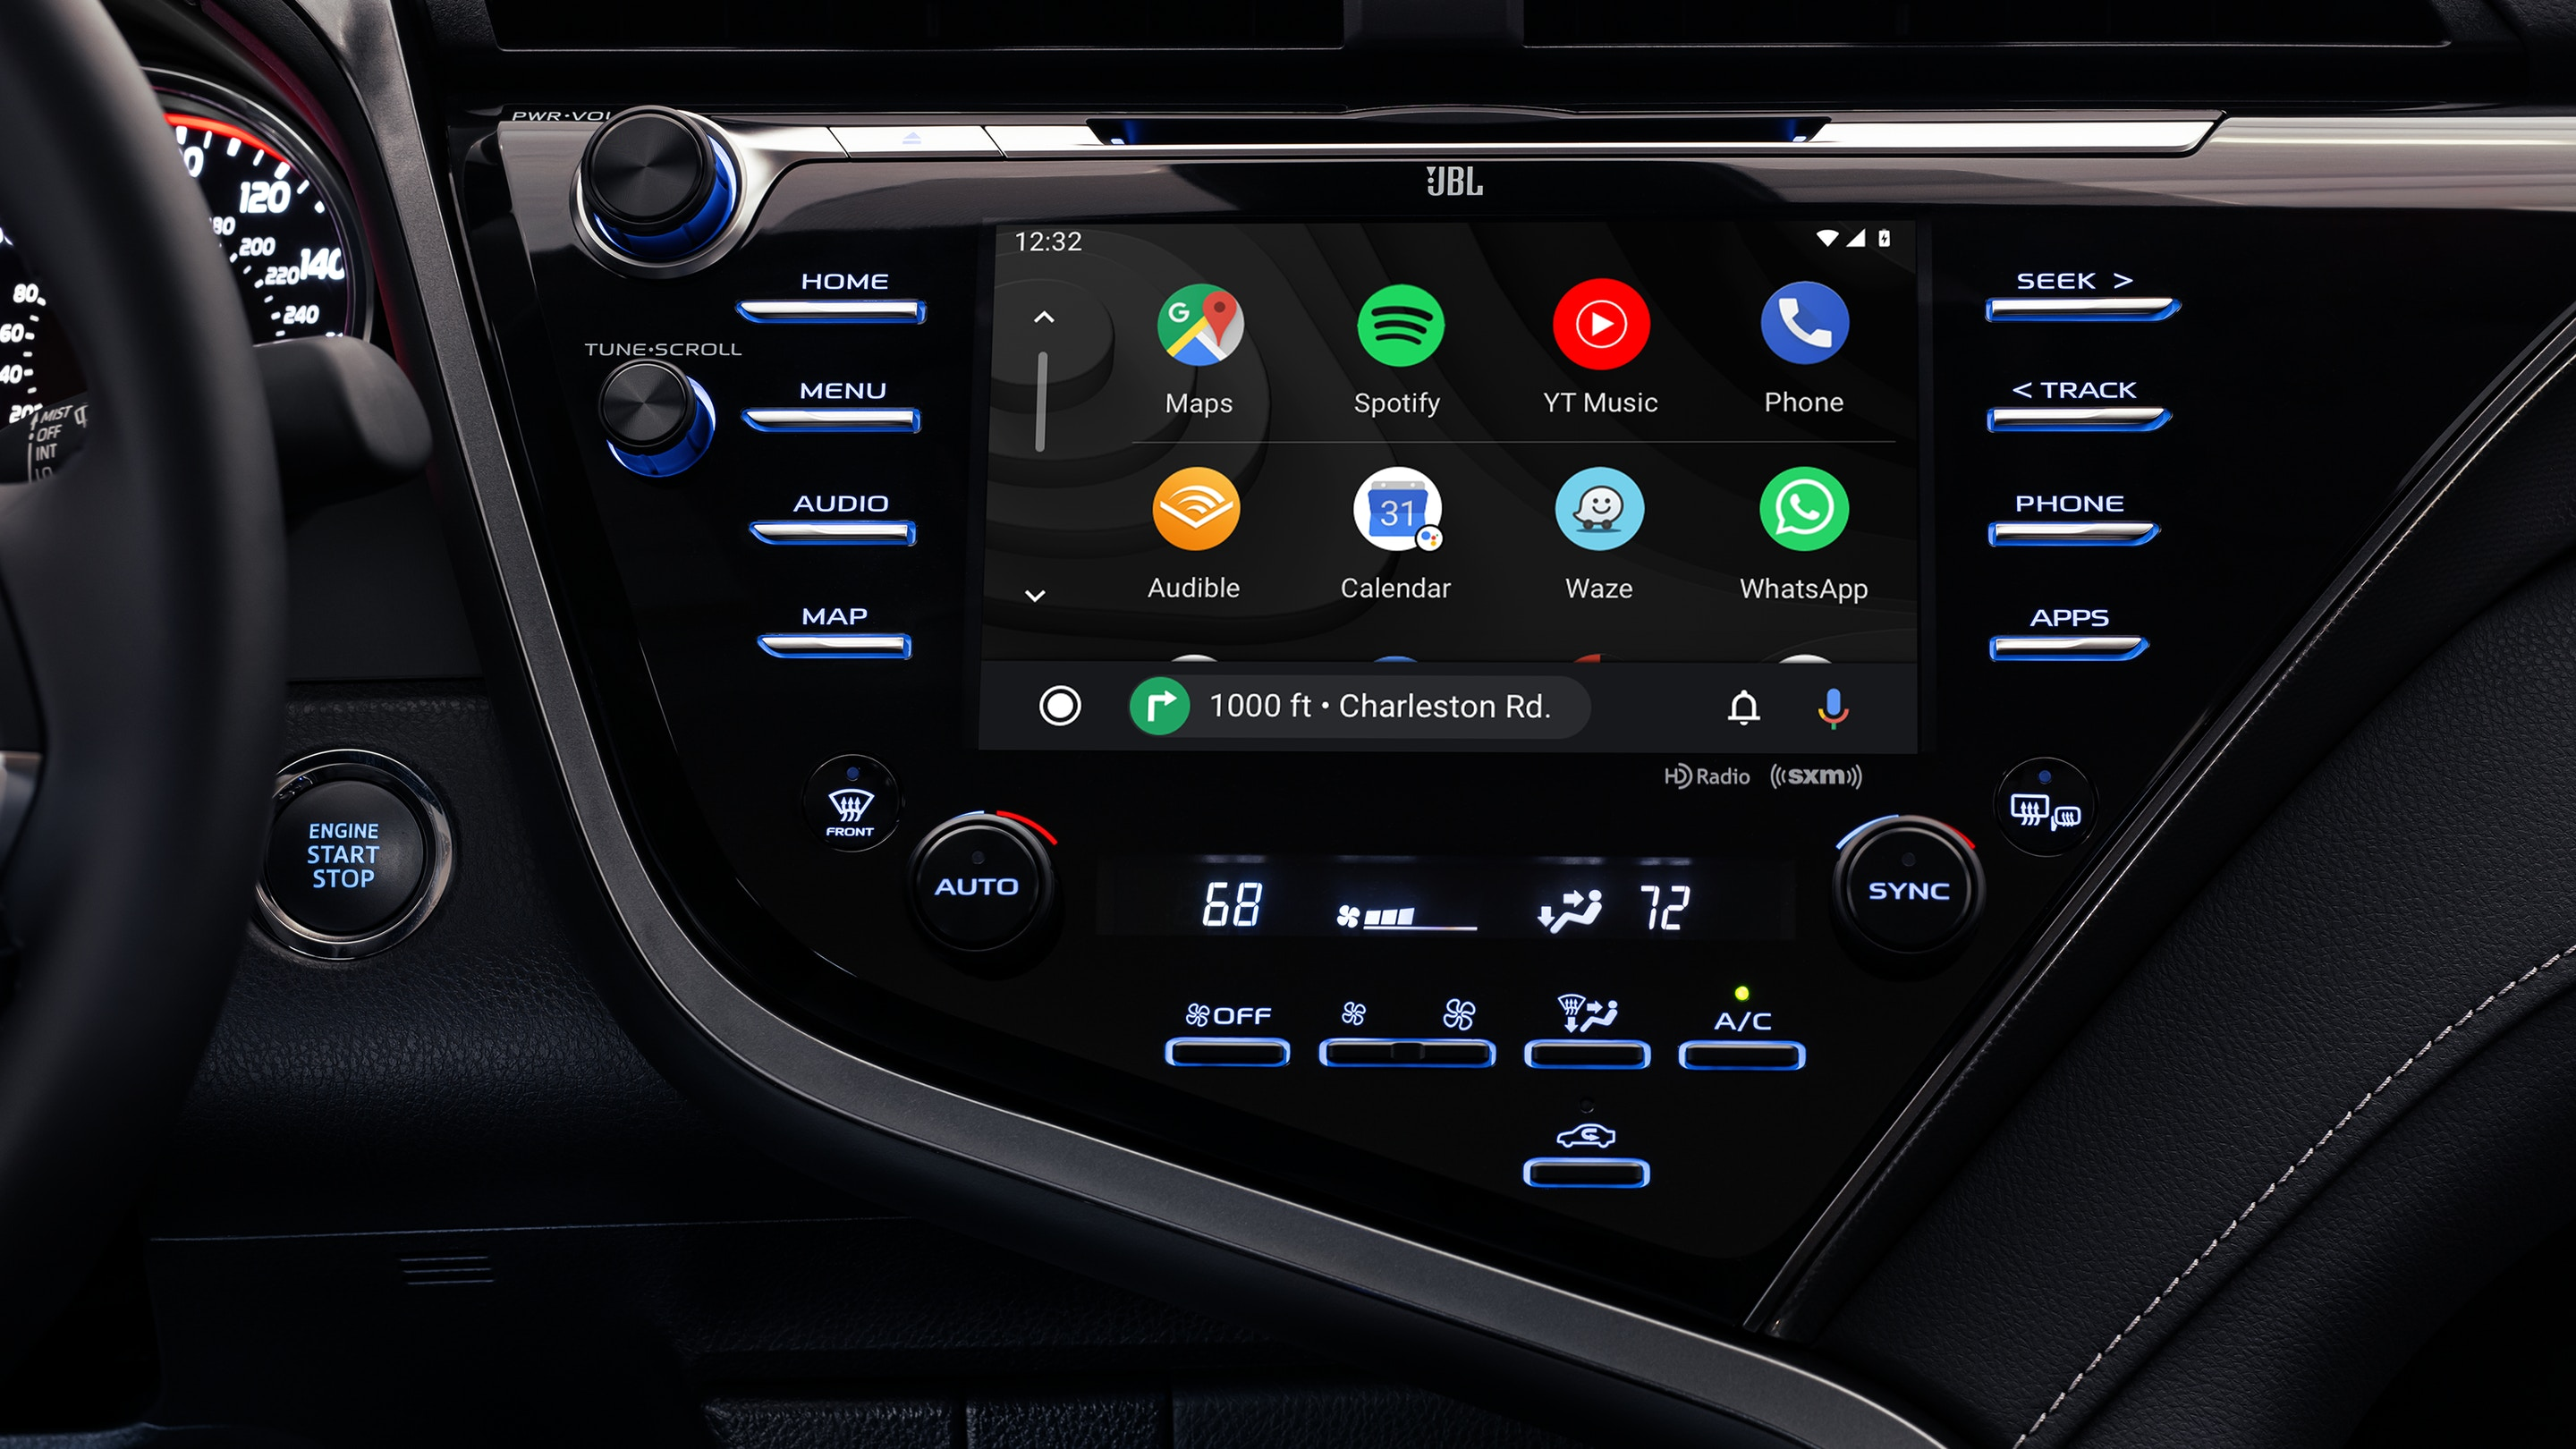 All Your Media at Your Fingertips in the 2020 Toyota Camry!